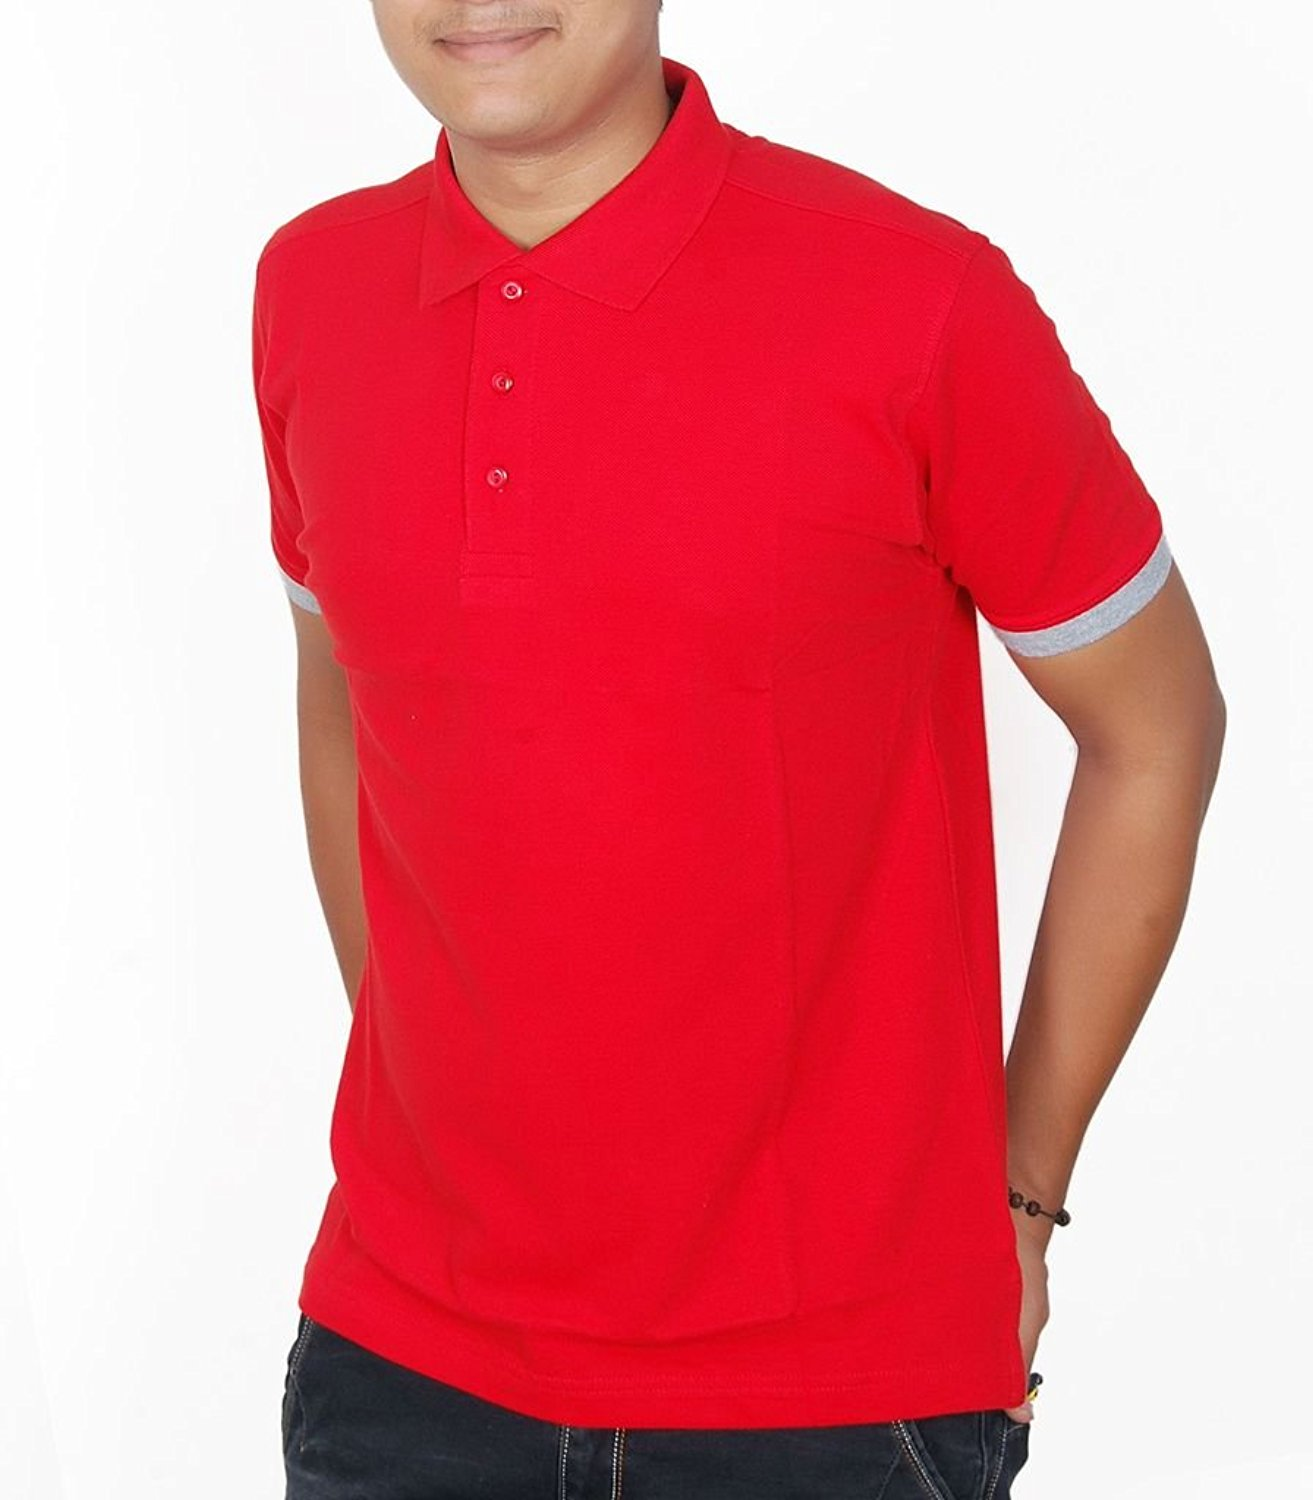 inukshukindia Inukshuk Men's Cotton Red Polo T-shirt